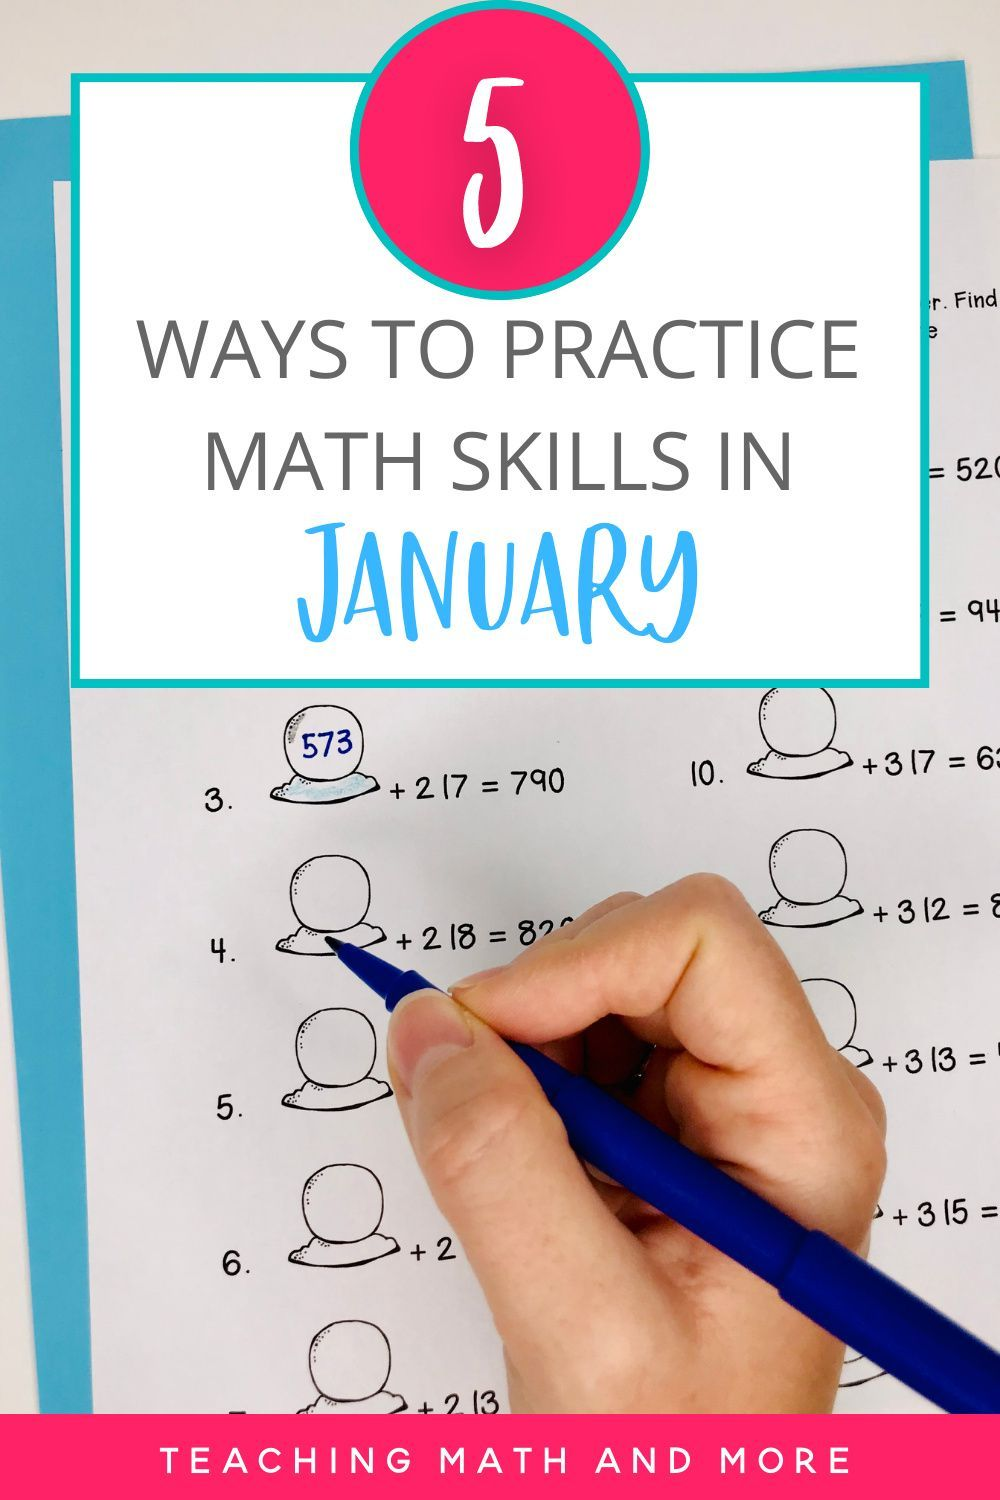 January Math Resources In 2021 Middle School Math Worksheets Math Activities Elementary Teaching Math Elementary [ 1500 x 1000 Pixel ]